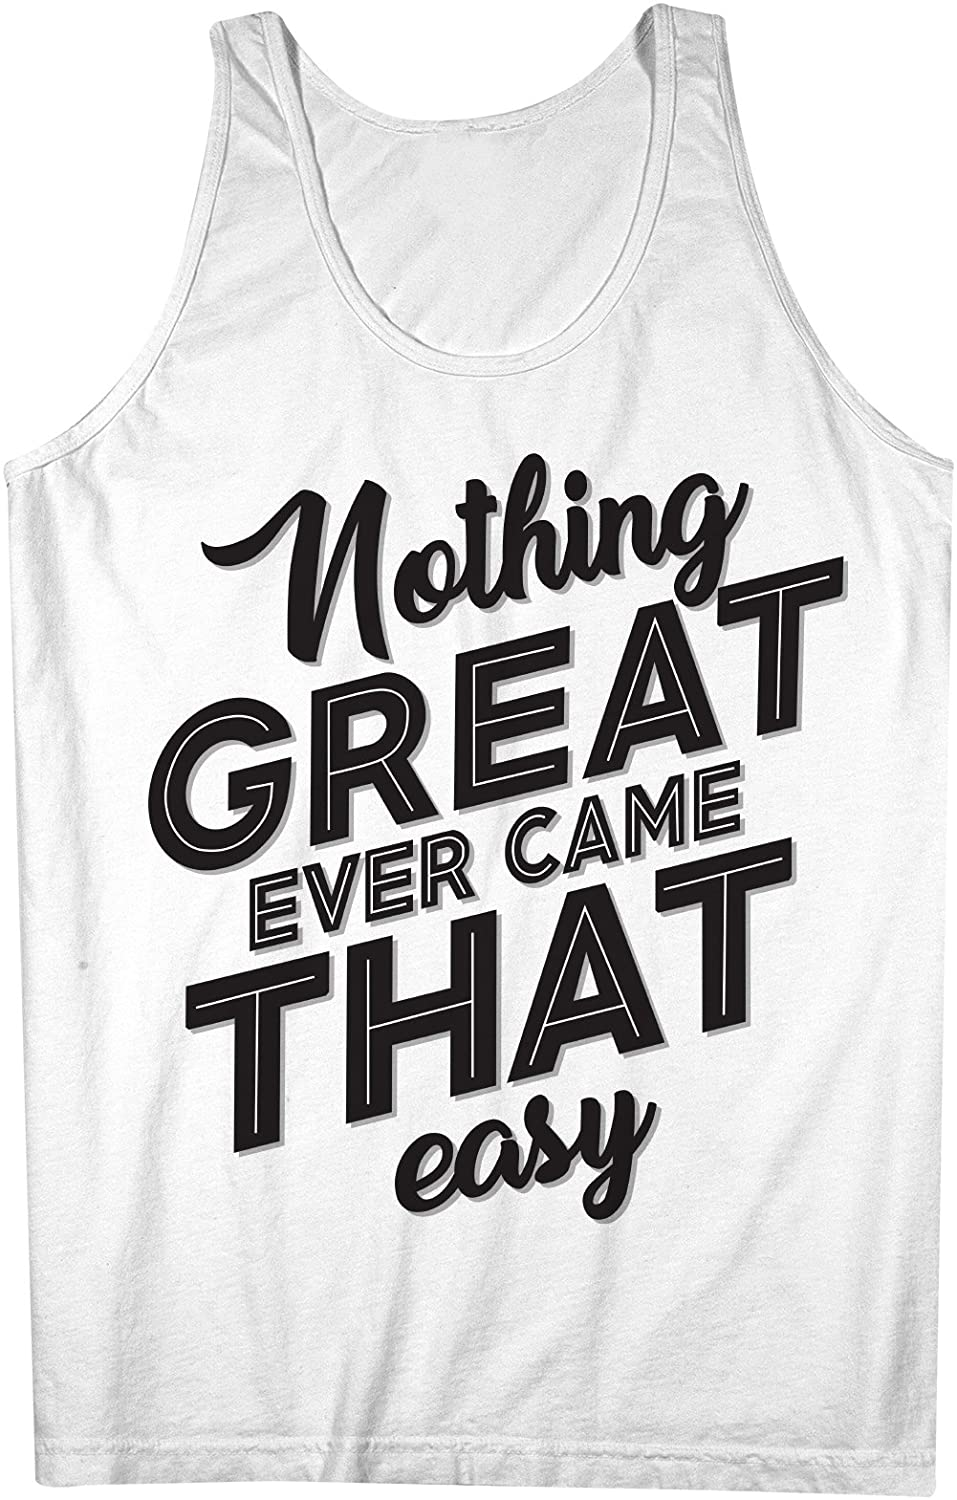 Nothing Great Ever Came That Easy やる気を起こさせます 男性用 Tank Top Sleeveless Shirt